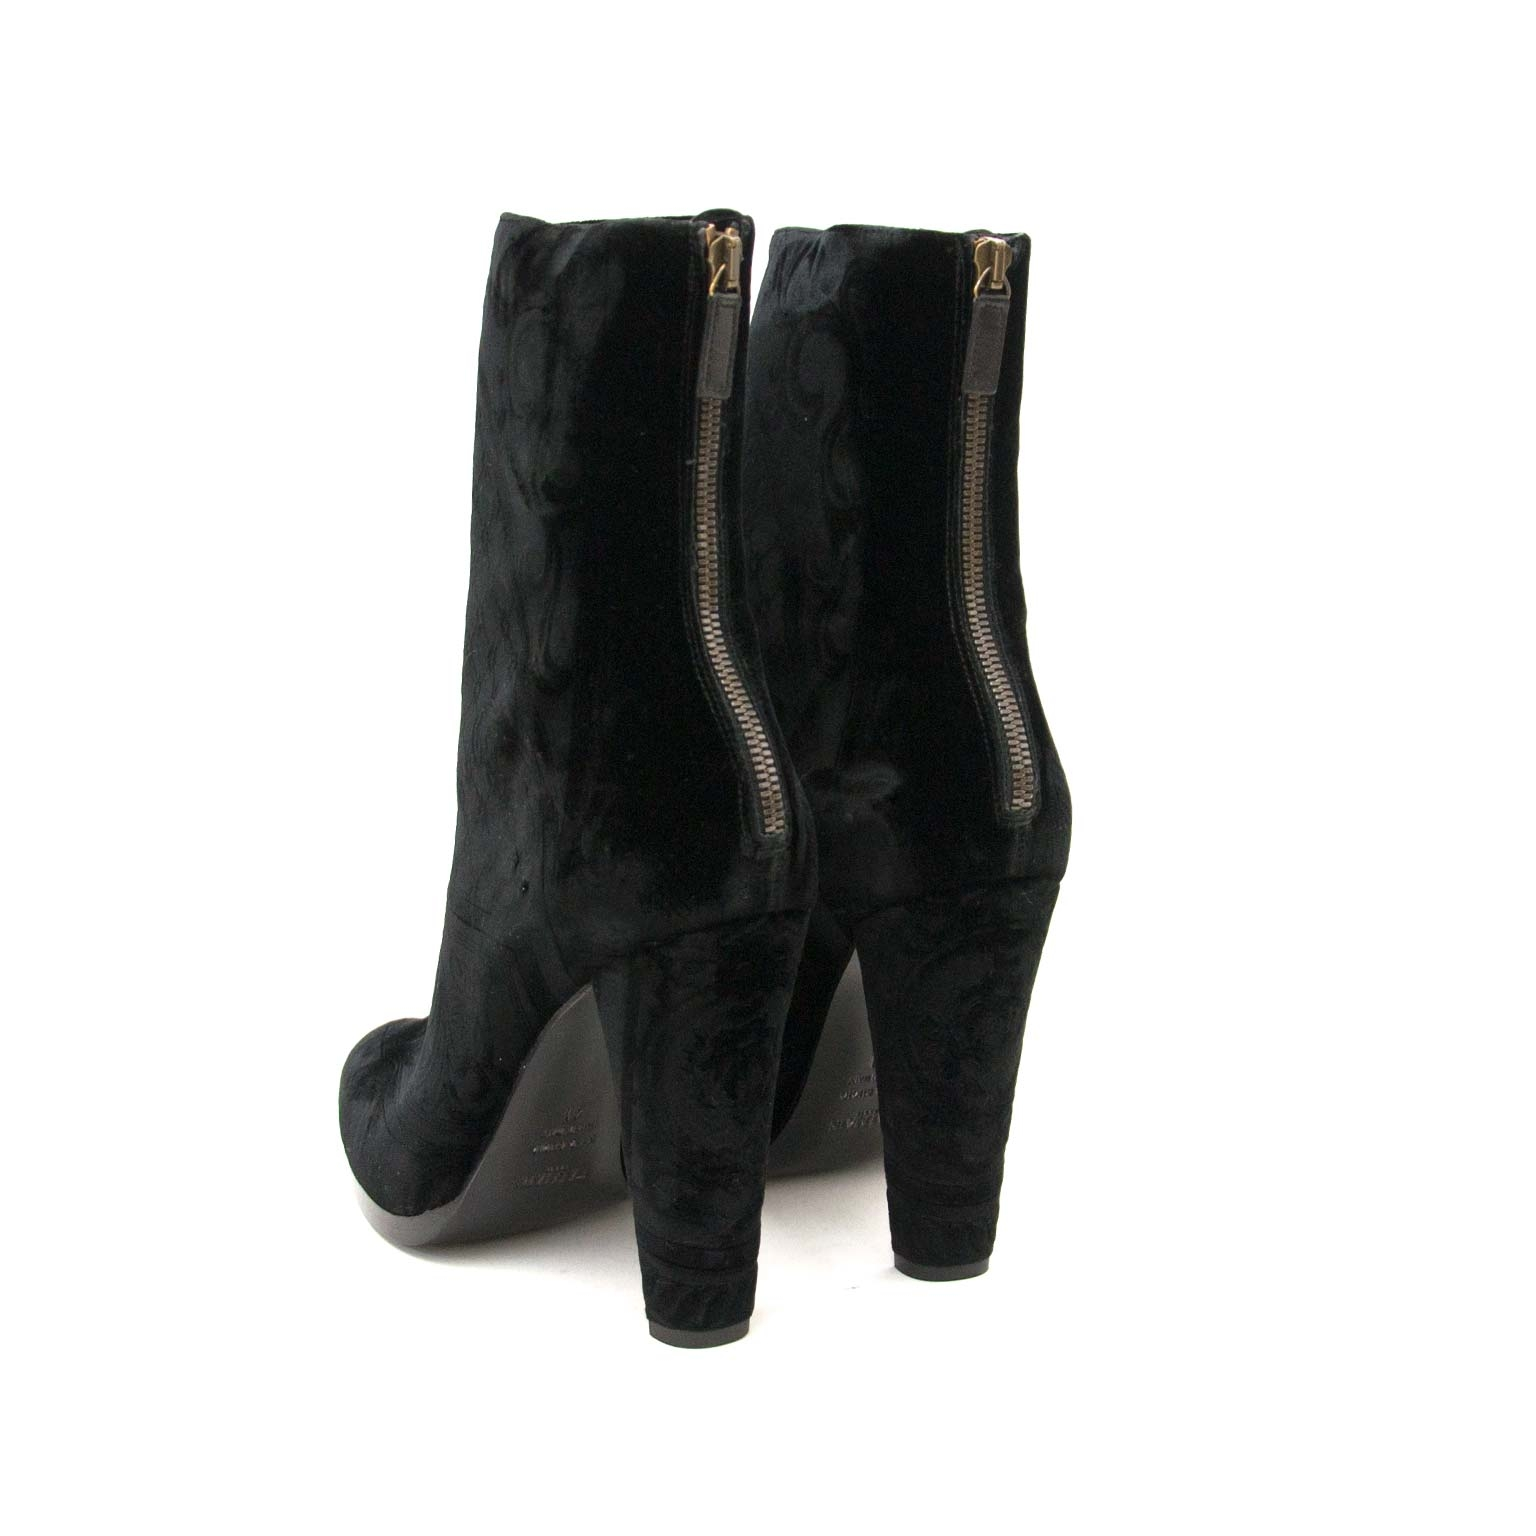 balmain black velvet baroque boots now for sale at labellov vintage fashion webshop belgium